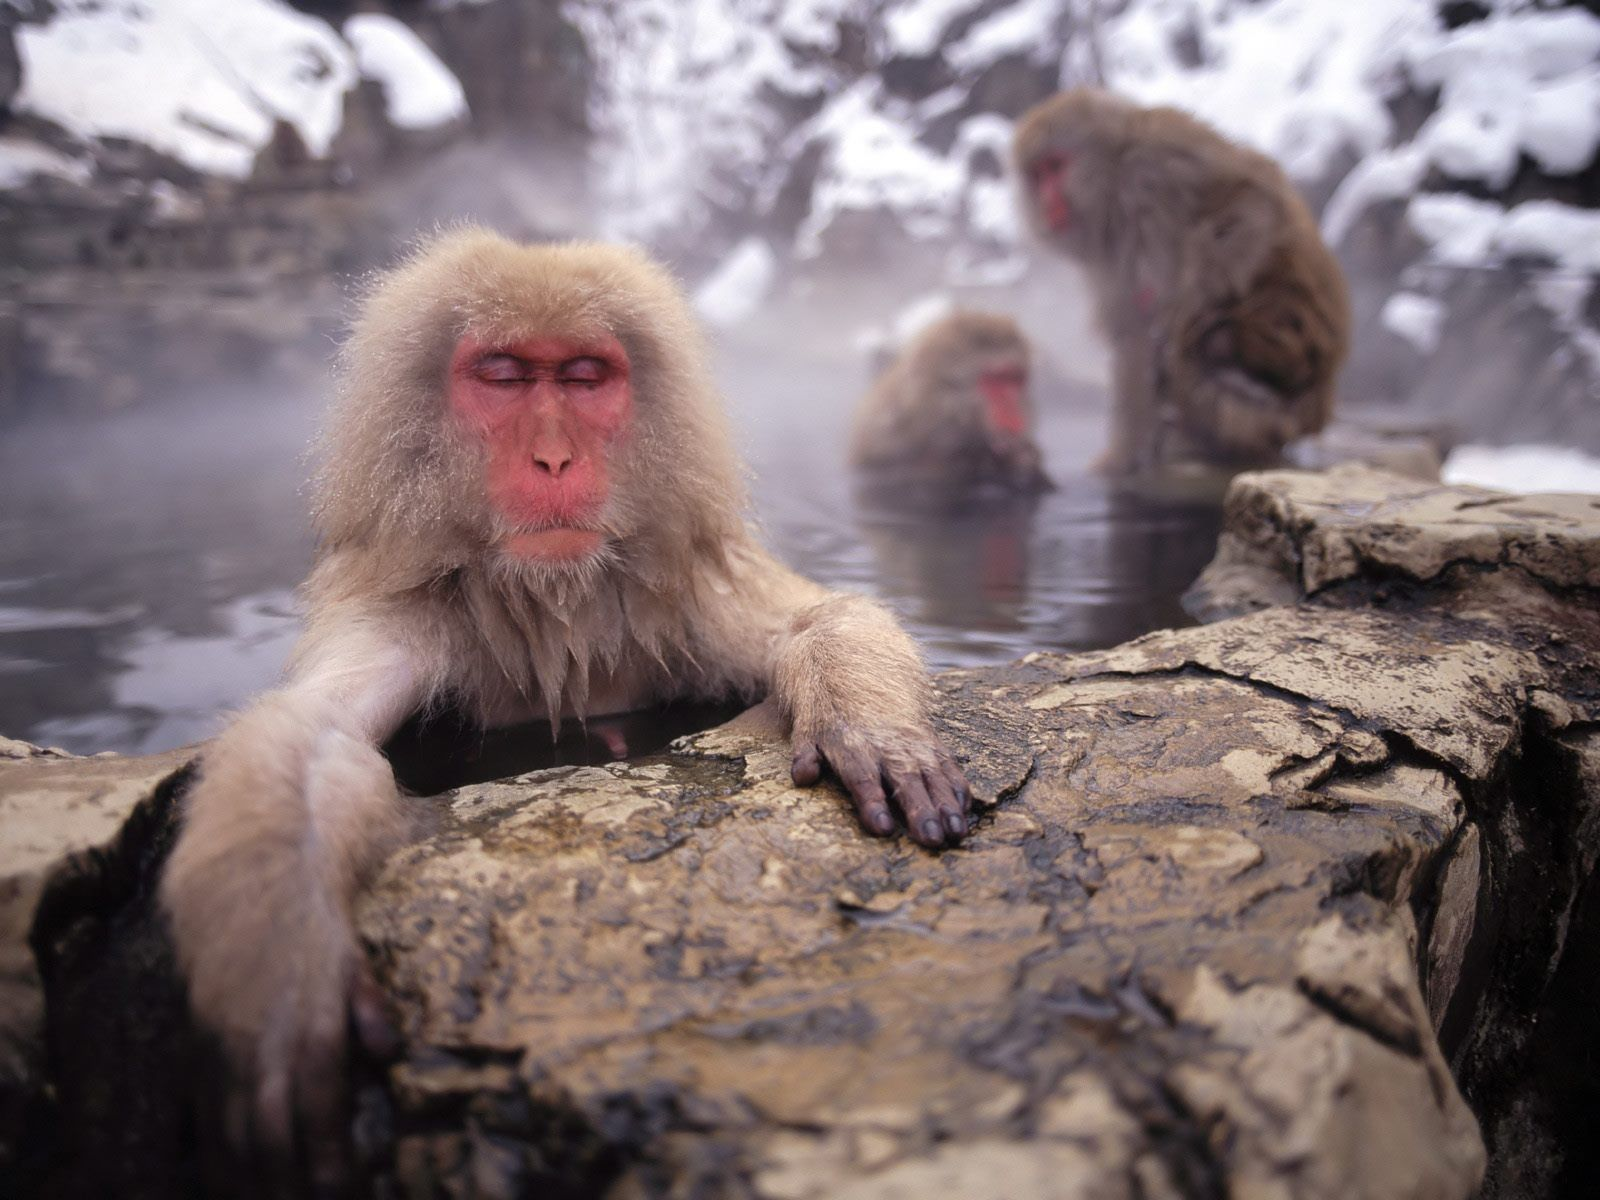 baboon Wallpaper and Background | 1600x1200 | ID:529209